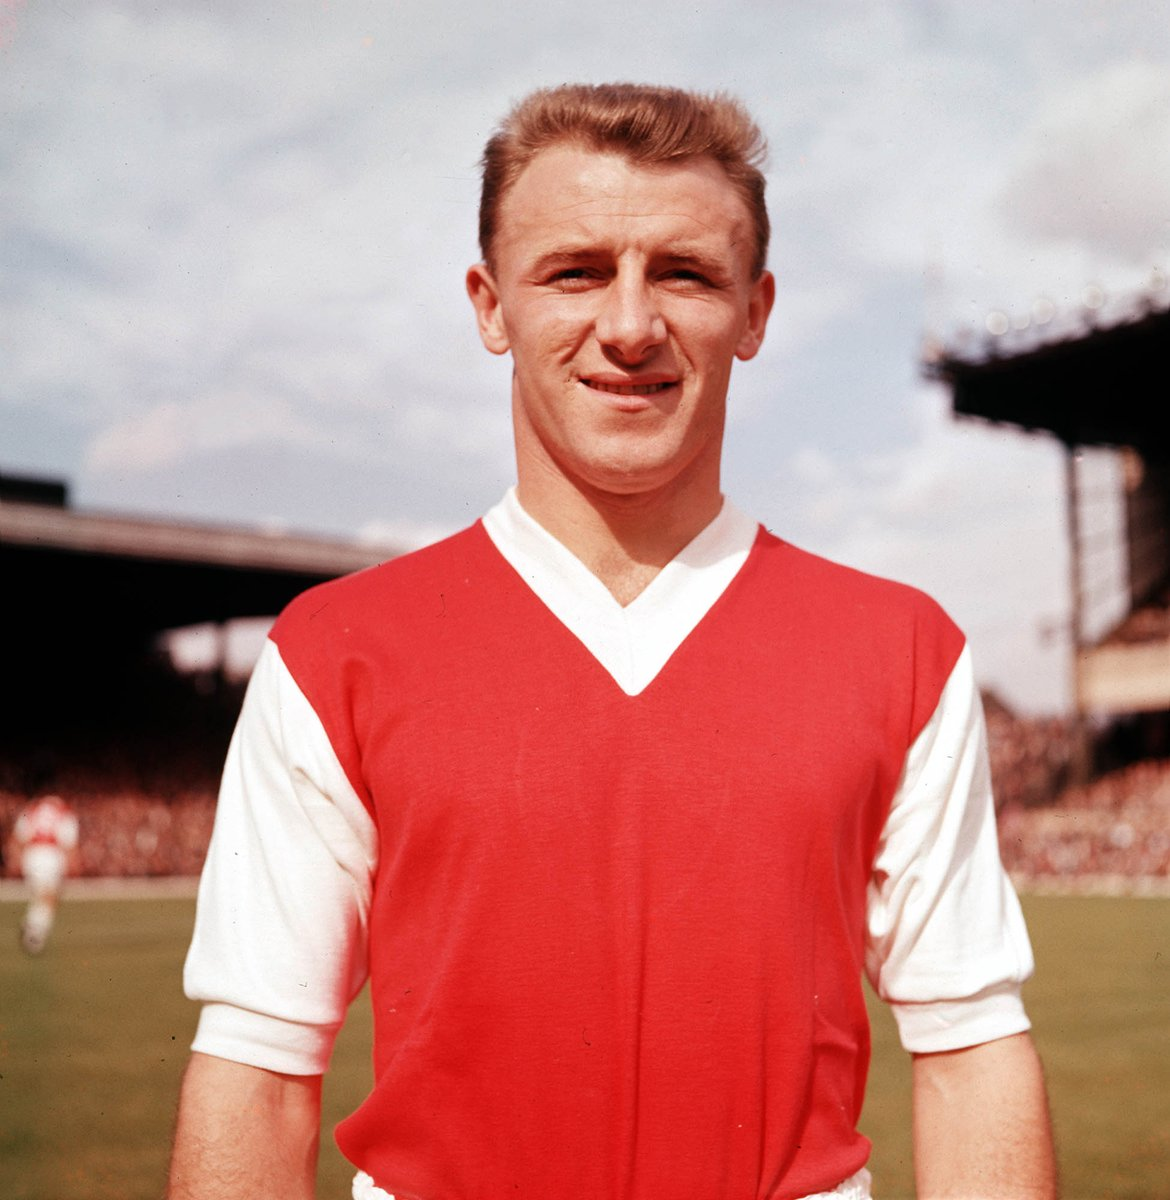 Very sad to hear of the death of Tommy Docherty, aged 92. Tommy played 94 times for us after joining from Preston in 1958.  One of the game's great characters, 'The Doc' loved to talk about his time at Highbury.  Our thoughts are with his family and friends.